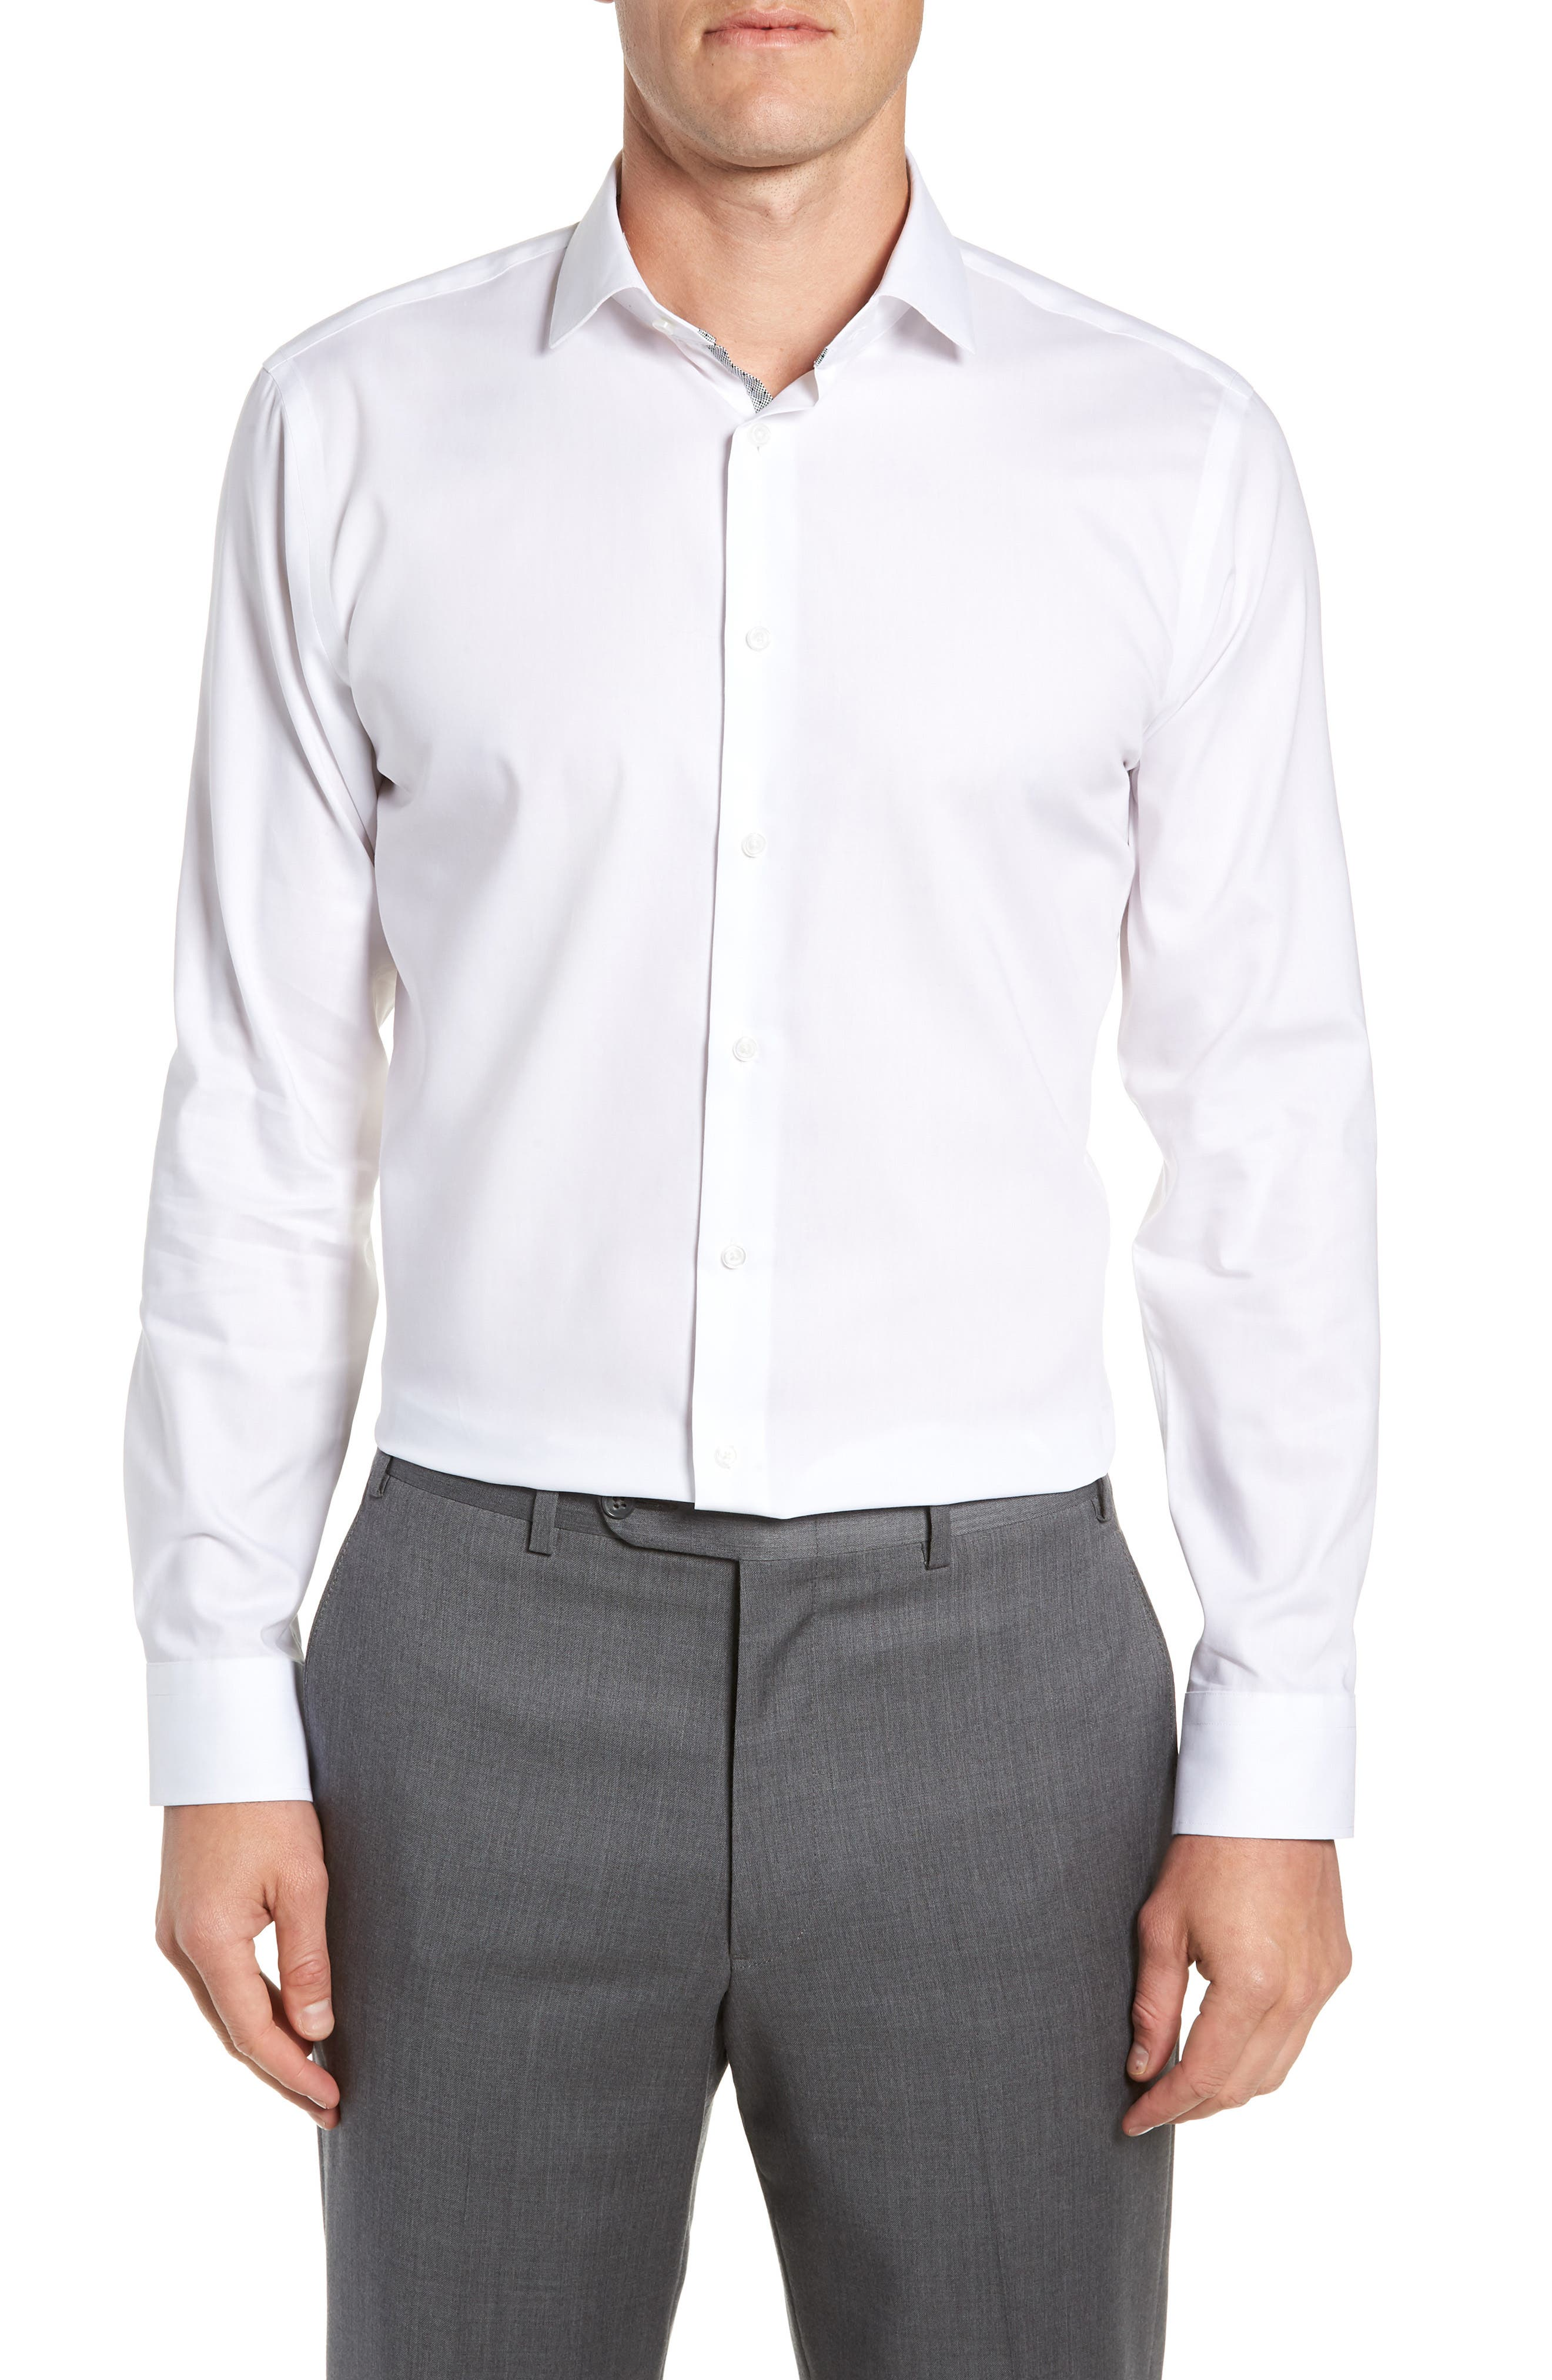 Image of CALIBRATE Trim Fit Dress Shirt